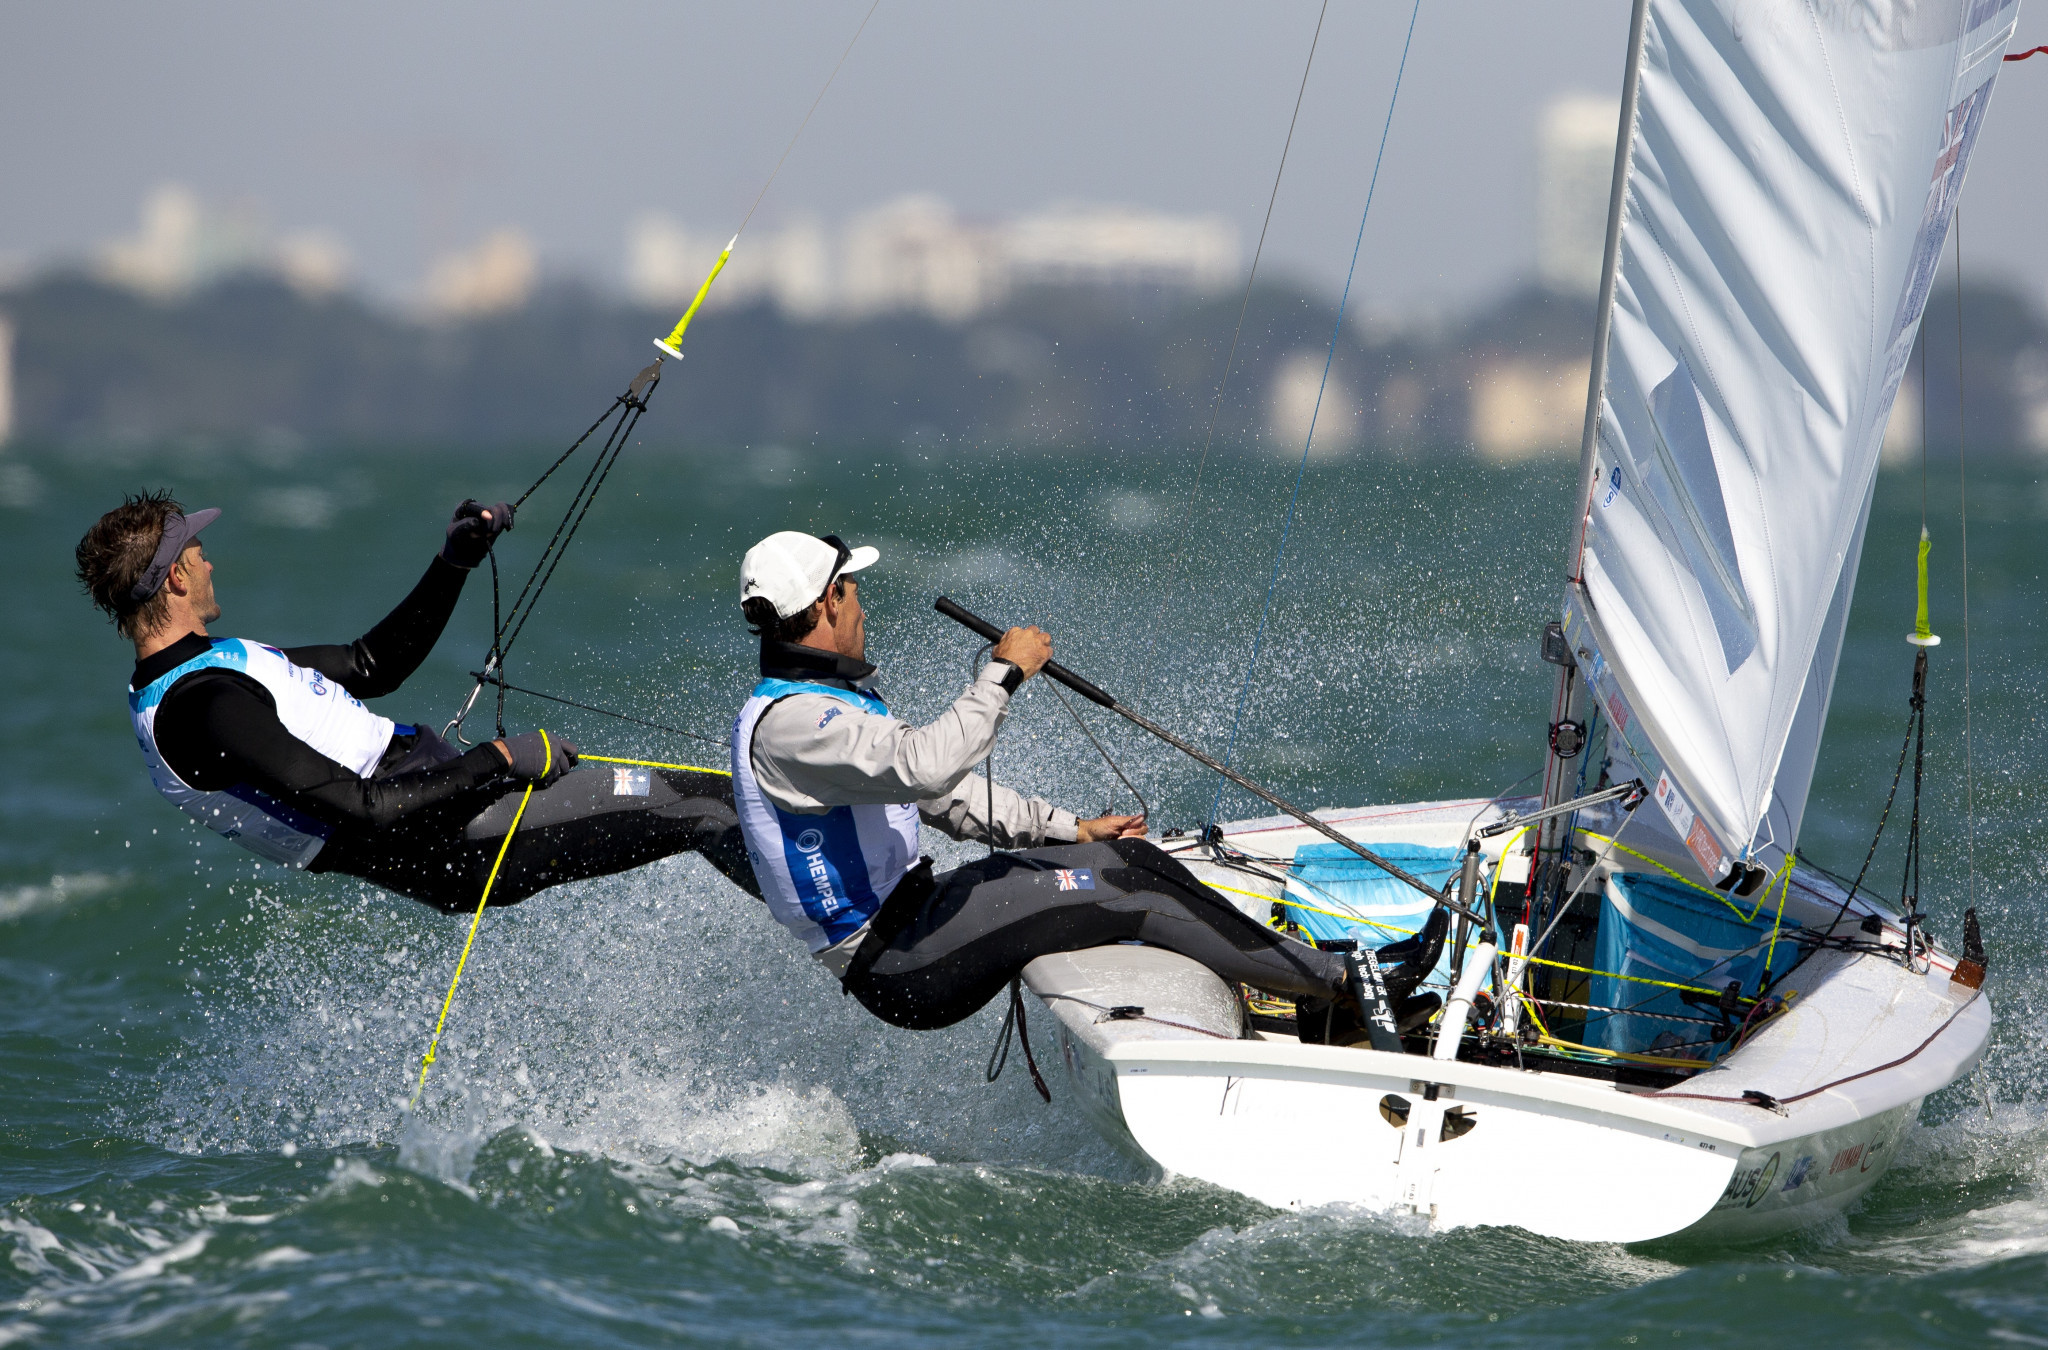 Olympic silver medallists move into men's 470 lead at Sailing World Cup in Miami